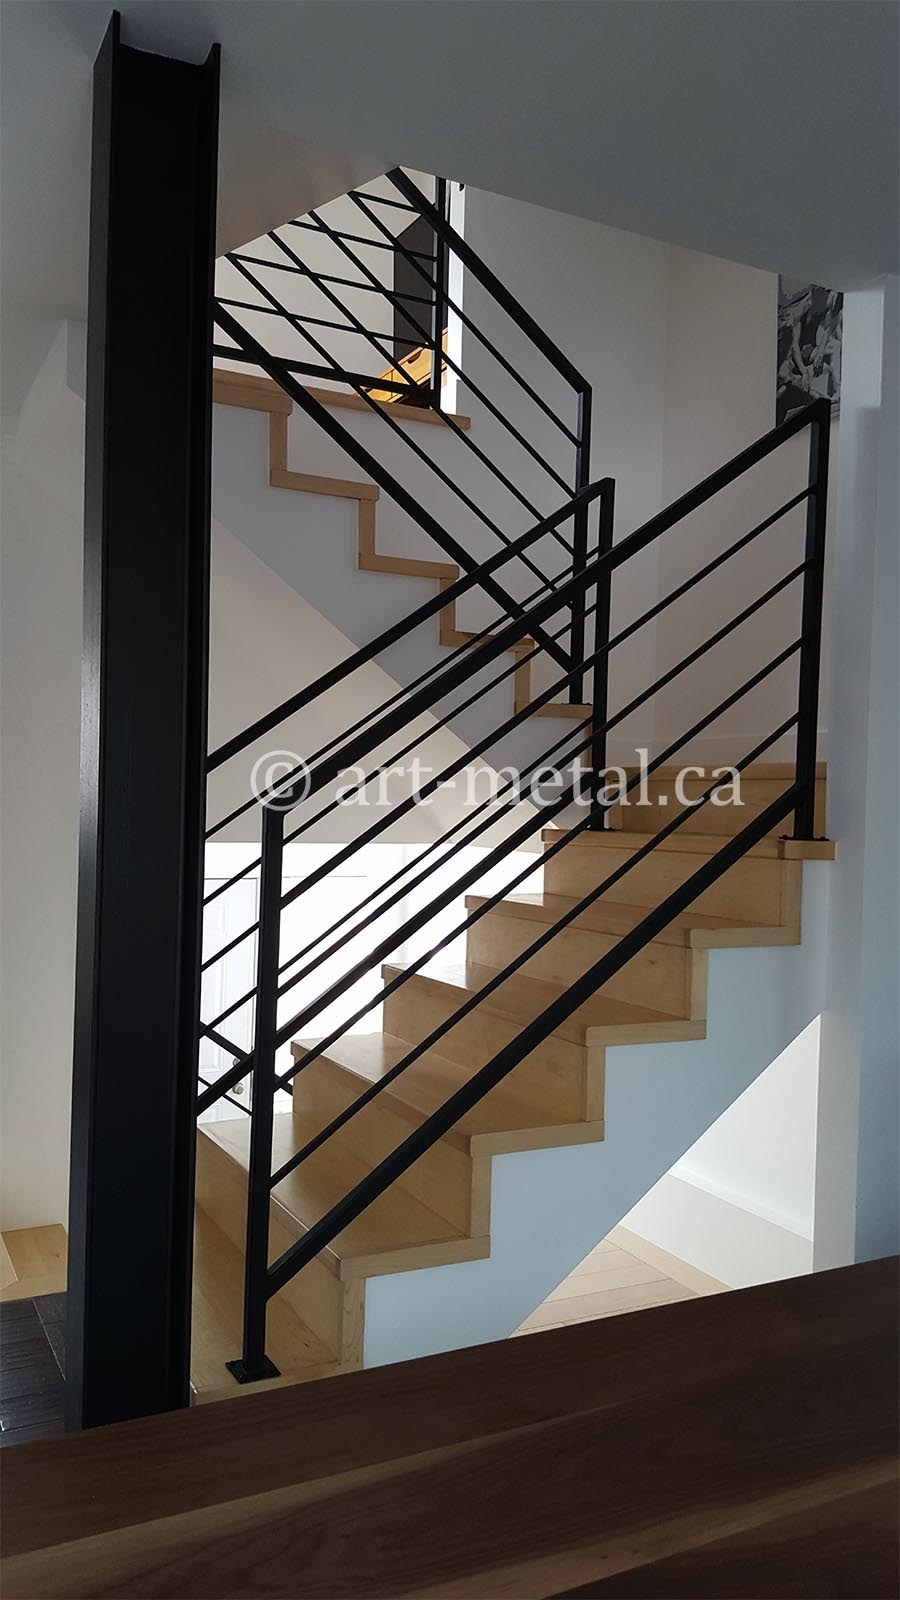 Interior Metal Stair Railing From The Best Contractor In Toronto   Iron Stair Railing Indoor   Interior Wrought   Wood   Cast Iron Balusters   Rod Iron   Railing Kits